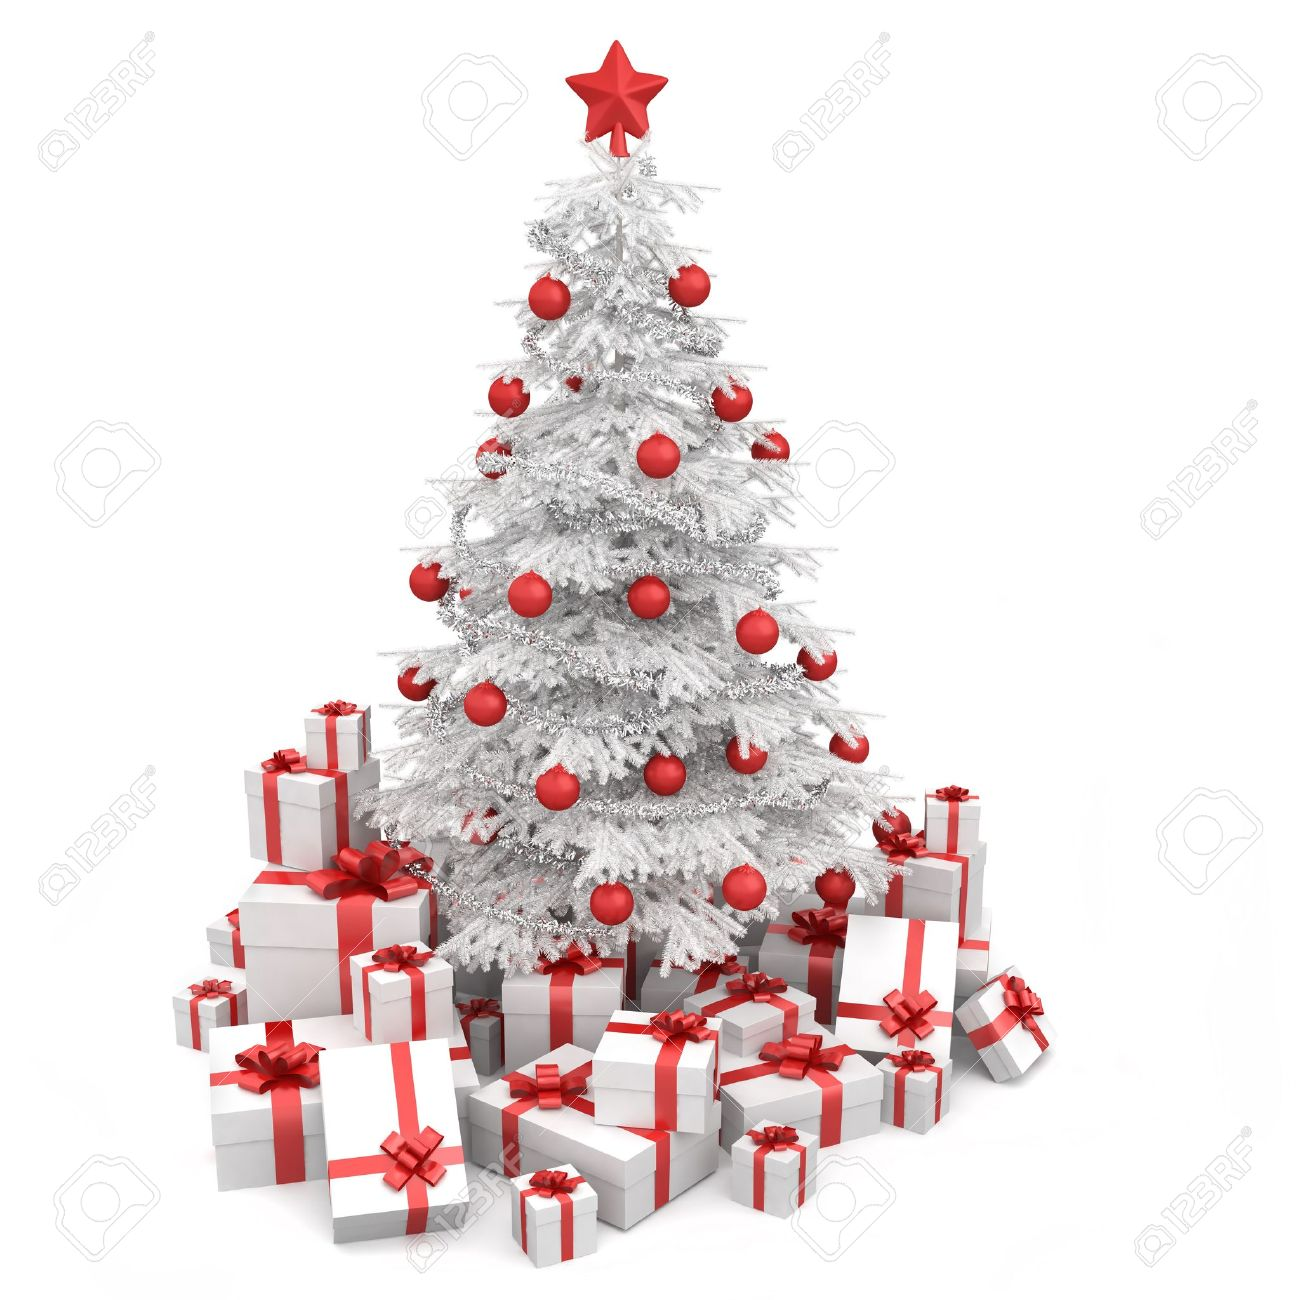 White And Red Christmas Tree Decorated With Many Presents And Stock Photo Picture And Royalty Free Image Image 7882198